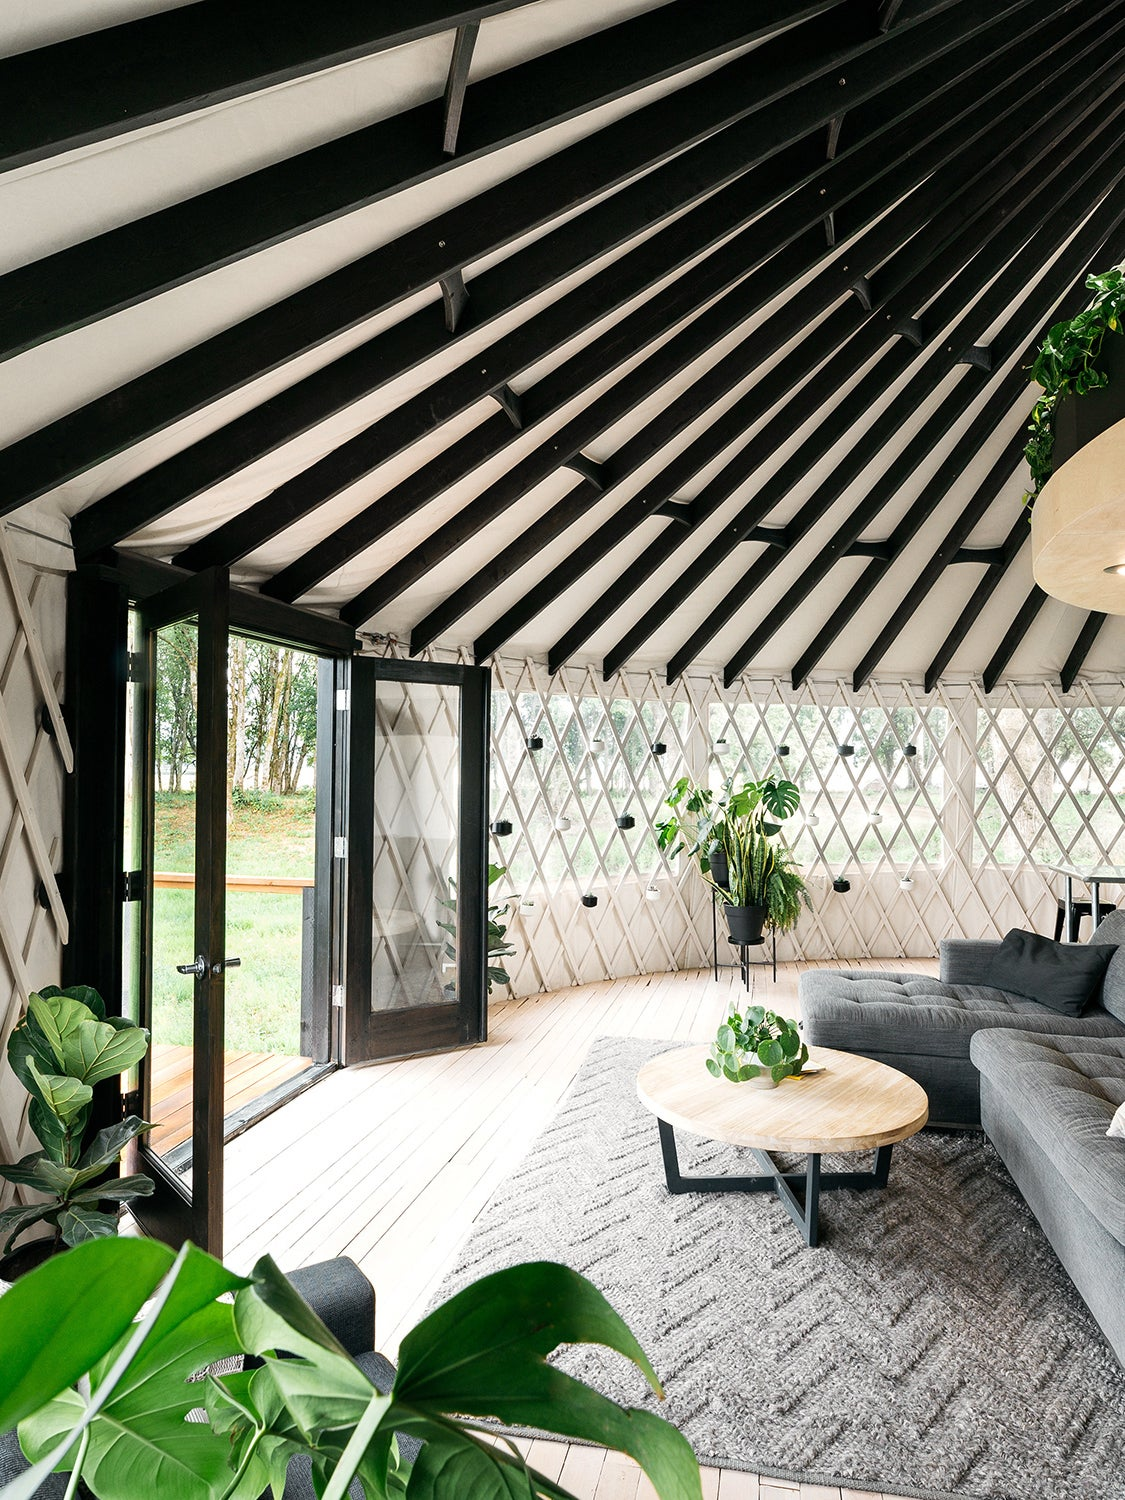 00-FEATURE-yurt-trend-domino